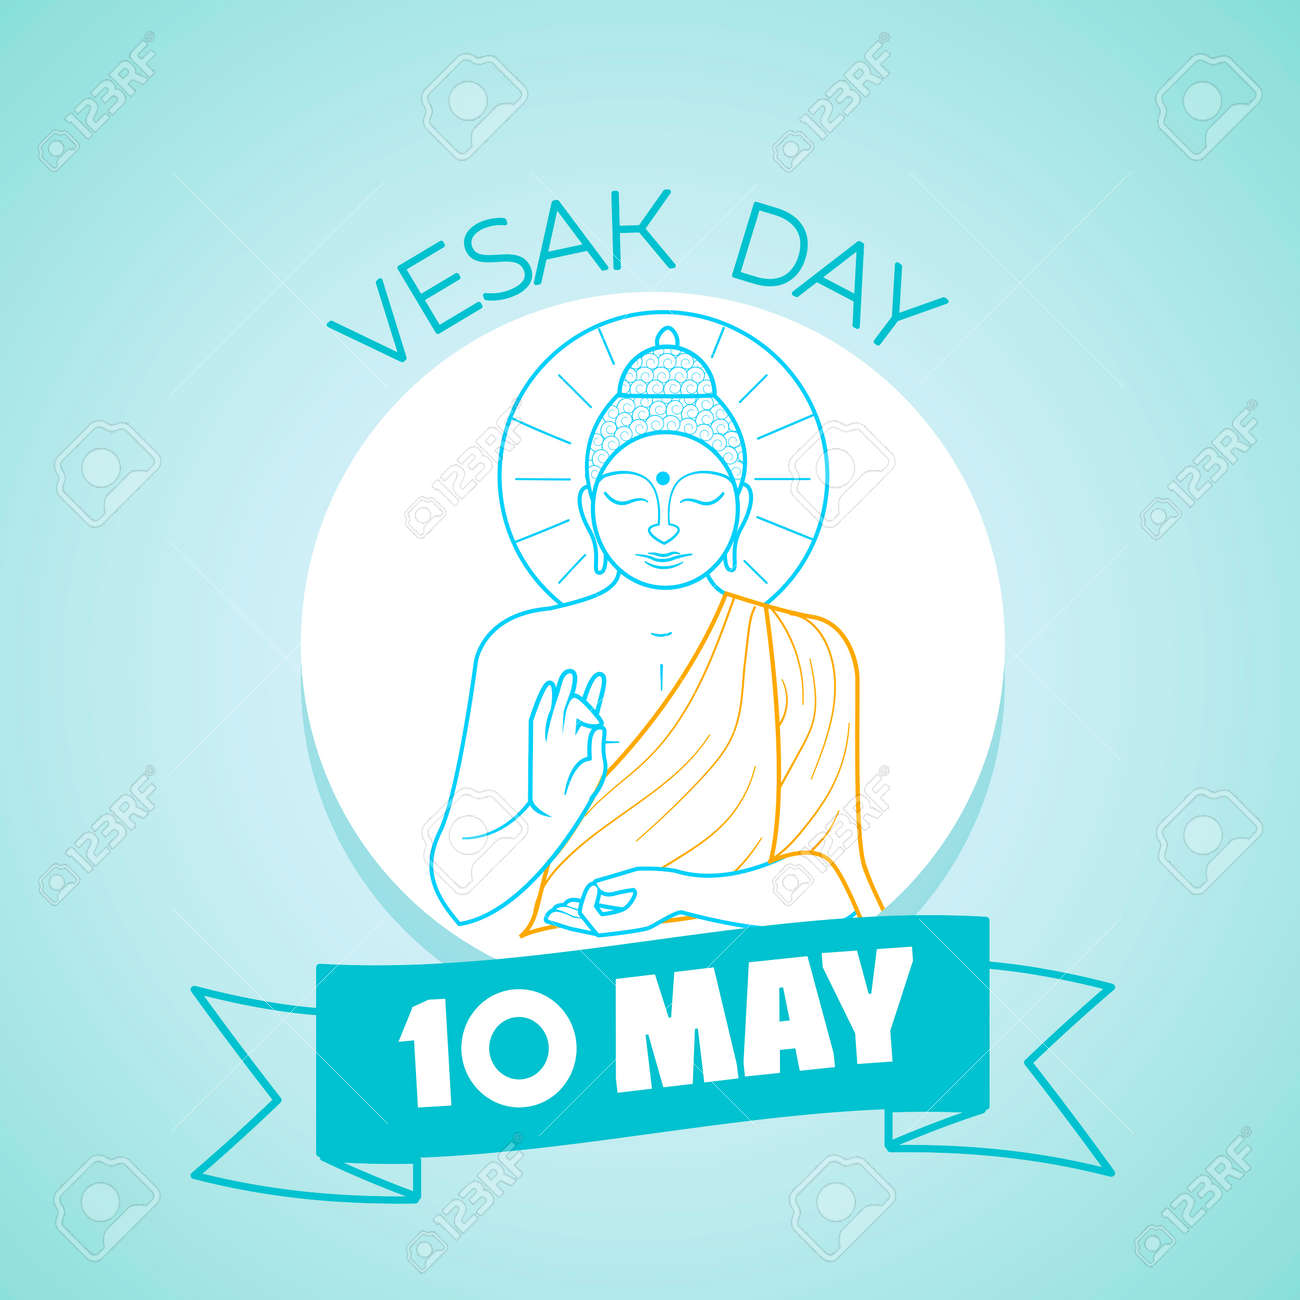 Calendar For Each Day On May 10 Greeting Card Holiday Vesak